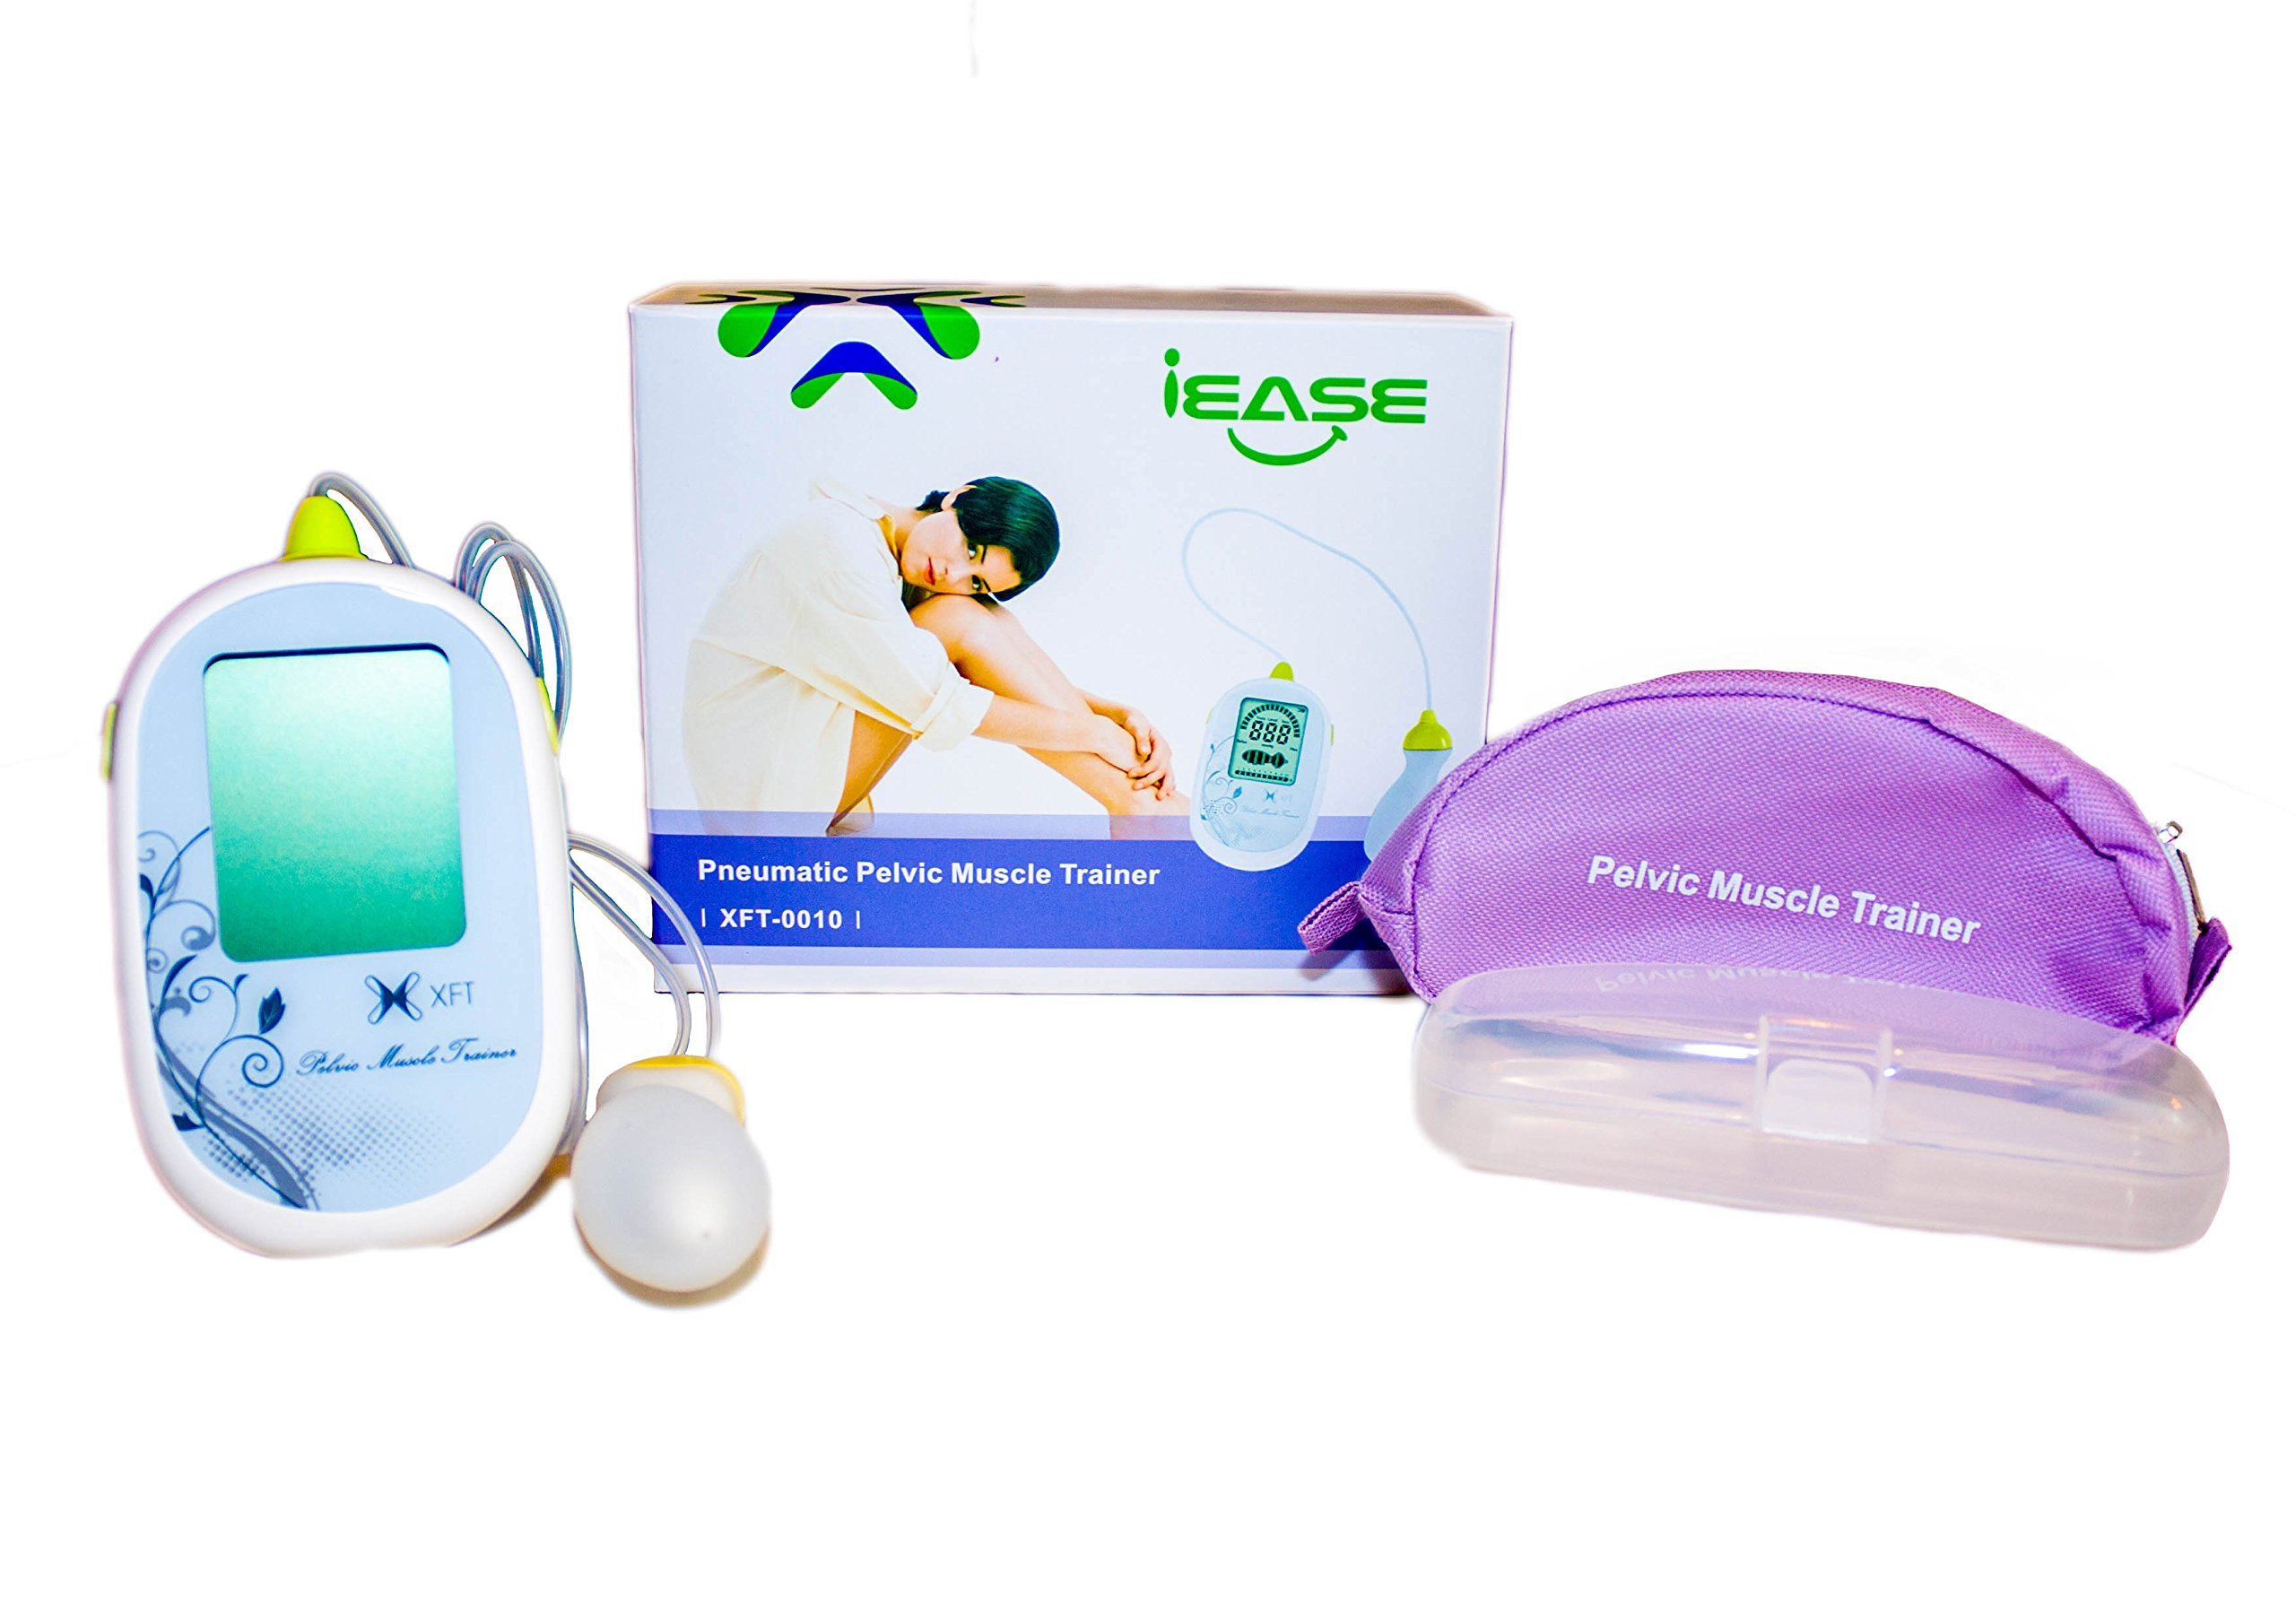 Medical Kegel Exerciser&Pelvic Floor Toner Muscle Stimulator SALES Kegals For Women Intimate Home Use, Best Bladder Control for Incontinence & Vagina Tighten. No Electricity Stimulation.Sales Now!